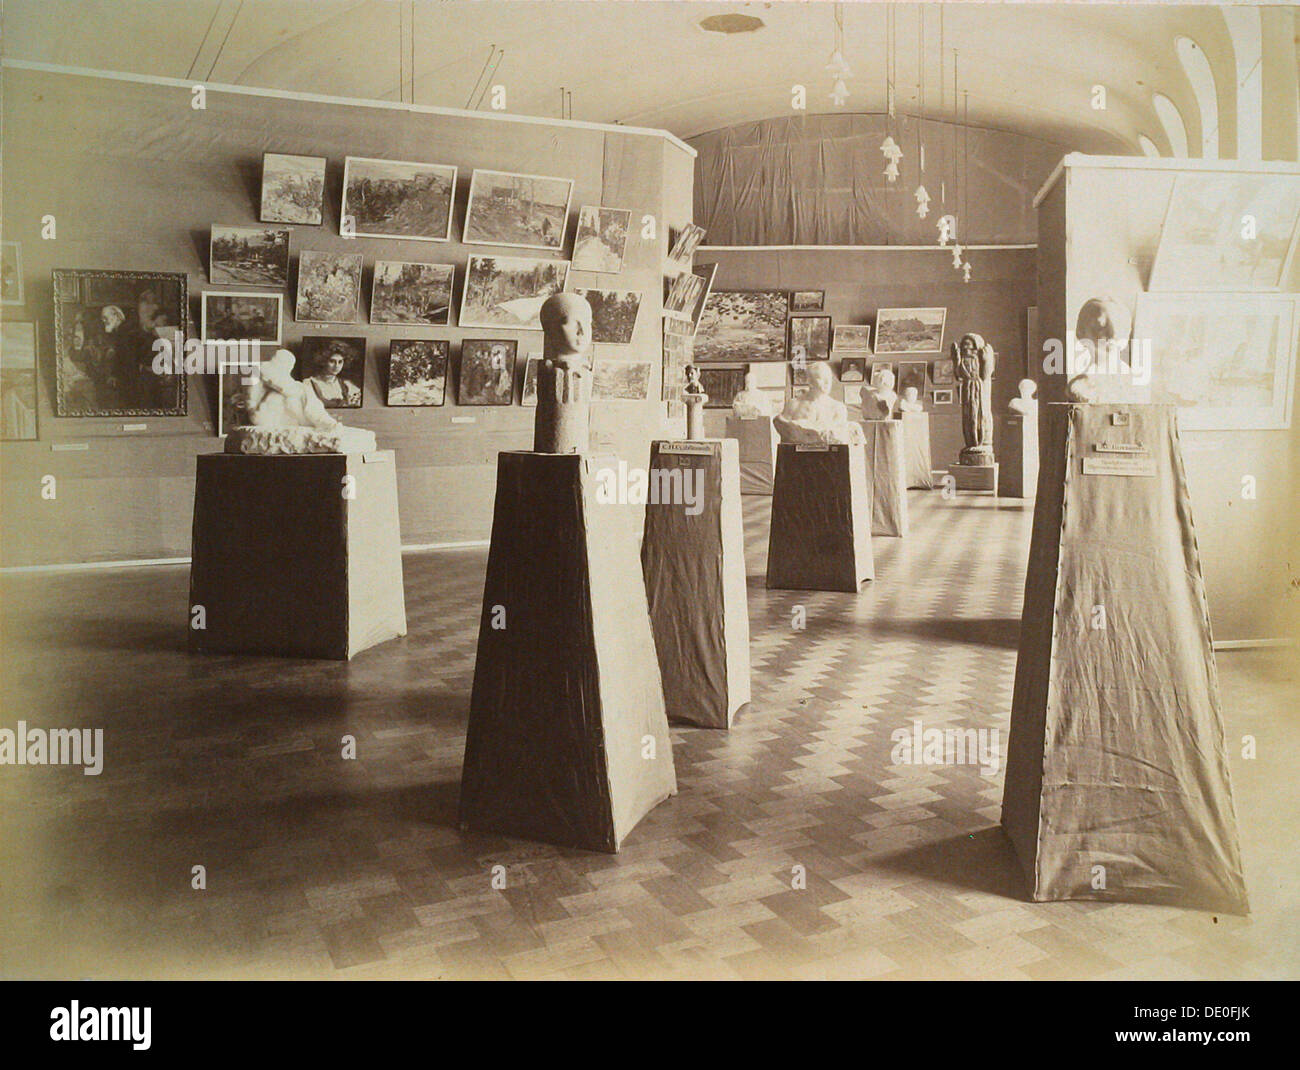 Exhibition hall, House of the Association of Literature and Arts, Russia, 1910s. - Stock Image